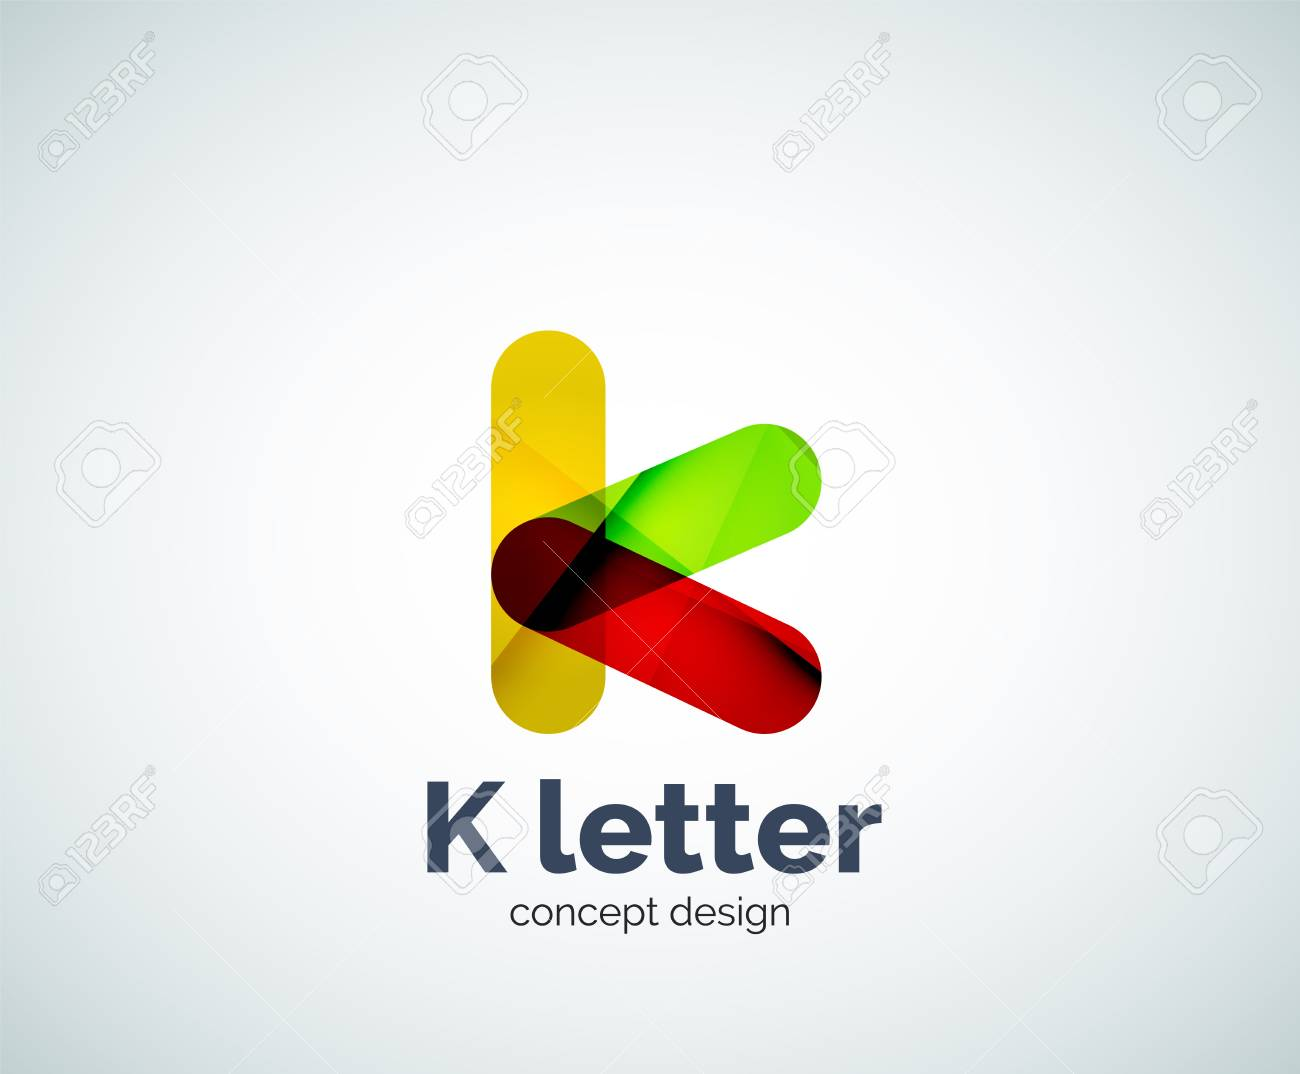 vector vector k letter template created with overlapping elements